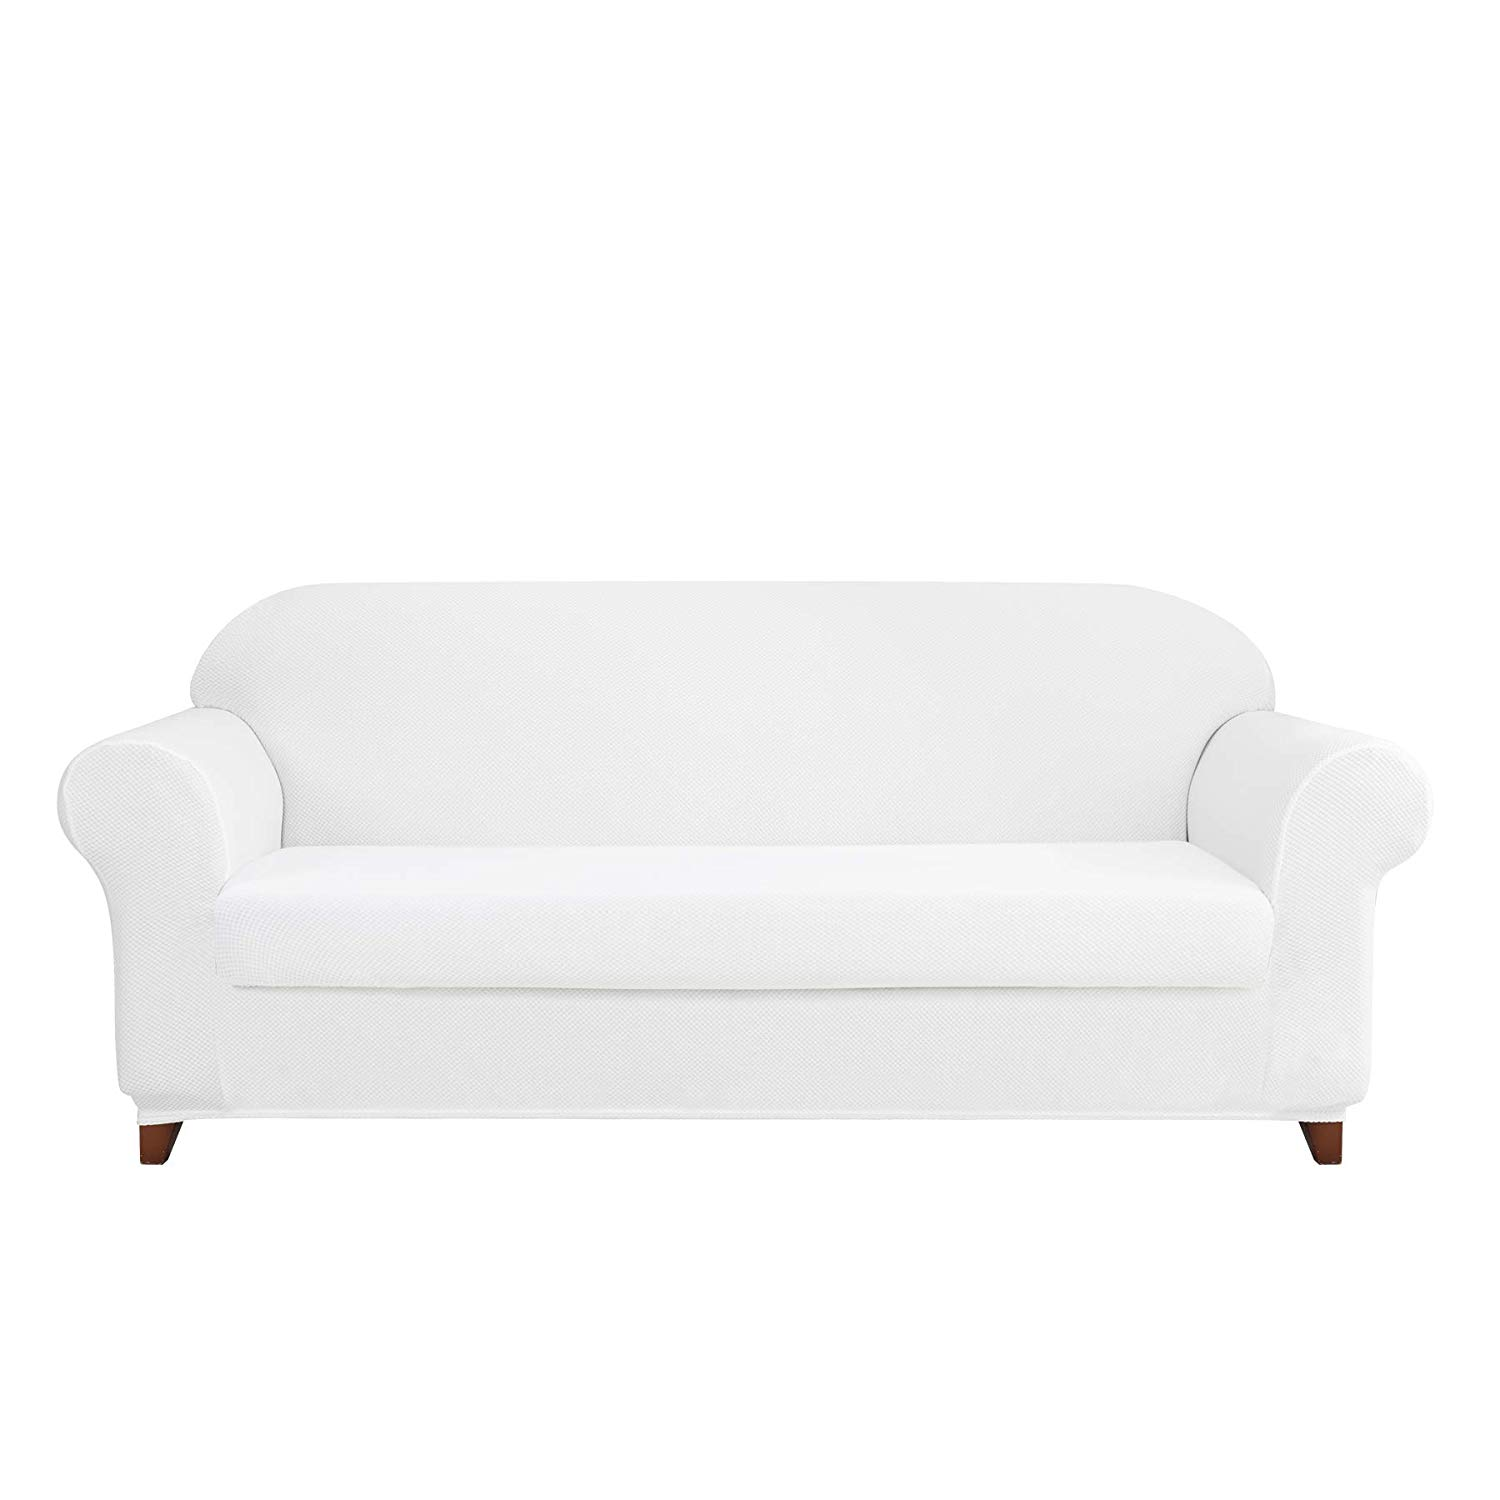 DyFun-Two-Piece White-Sofa-Slipcovers